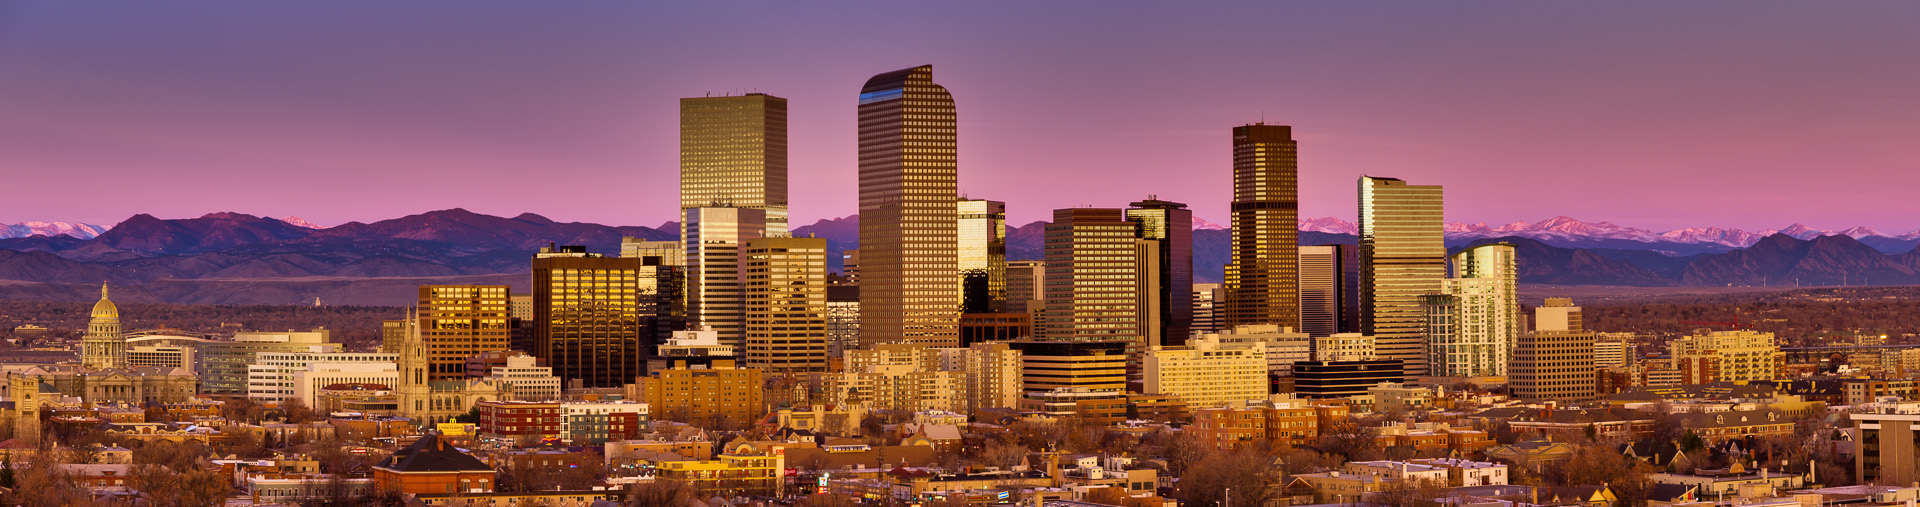 Denver Skyline Sunrise.jpg